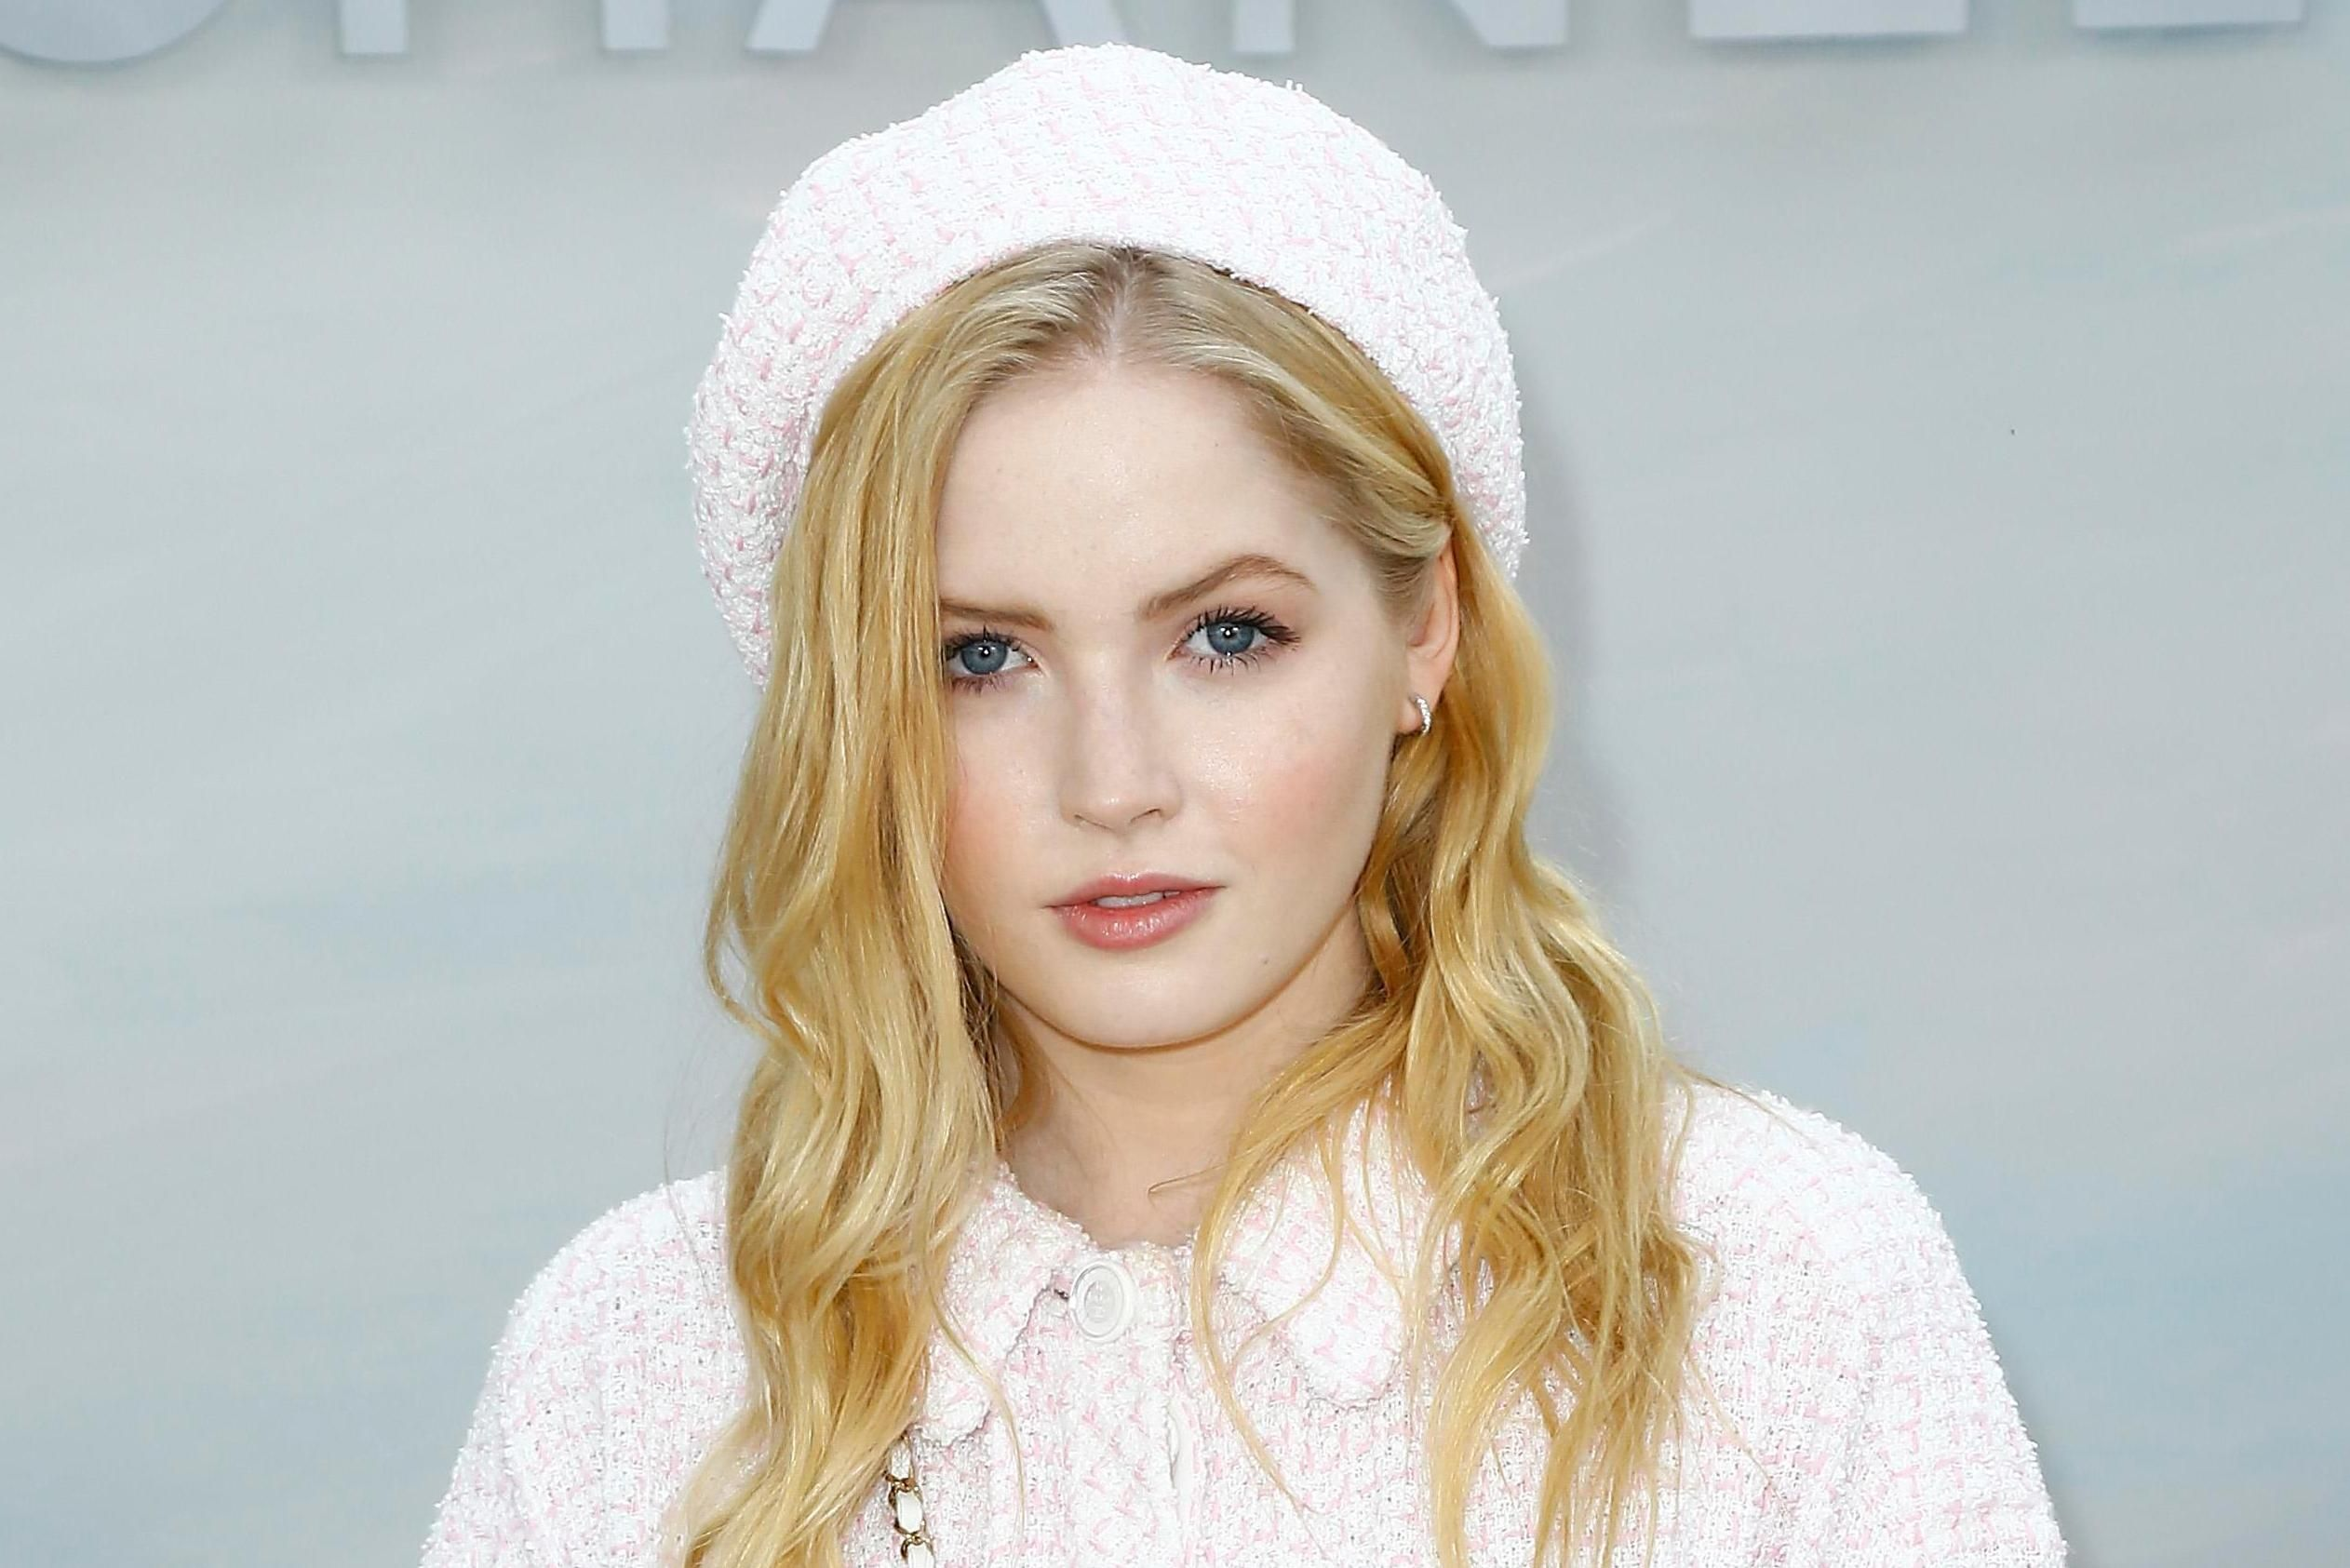 d526444c19c Who is Ellie Bamber  Les Miserables actress on BBC1 and Richard Maddens  girlfriend